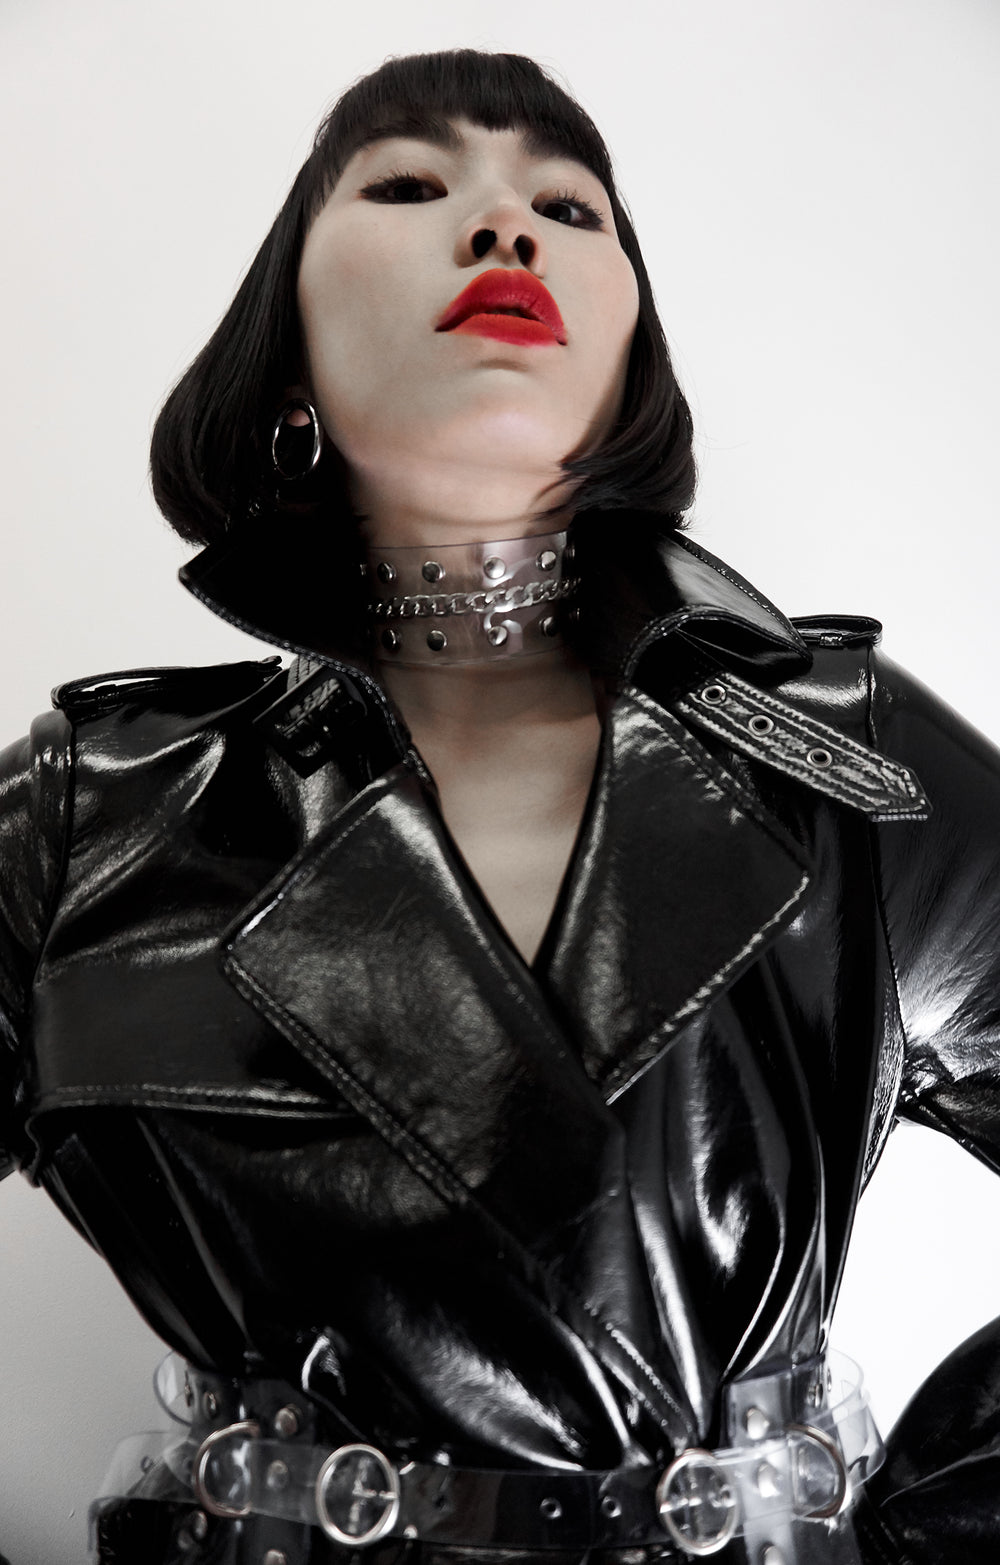 Clear Vinyl studded collar with chain detailed Jivomir Domoustchiev